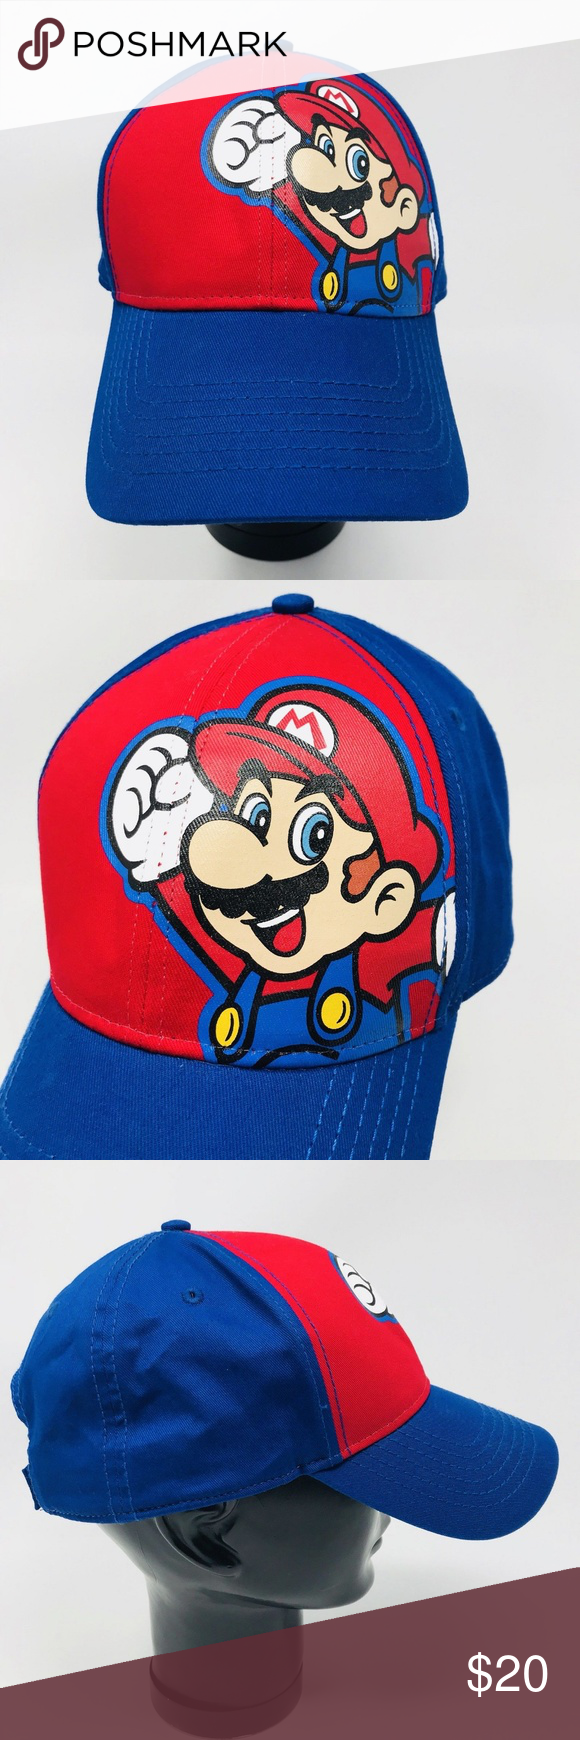 Super Mario Youth Baseball Hat Osfm Youth Baseball Hat Super Mario One Size Fits Most Hook And Loop Adjustable C Fashion Design Accessories Hats Clothes Design